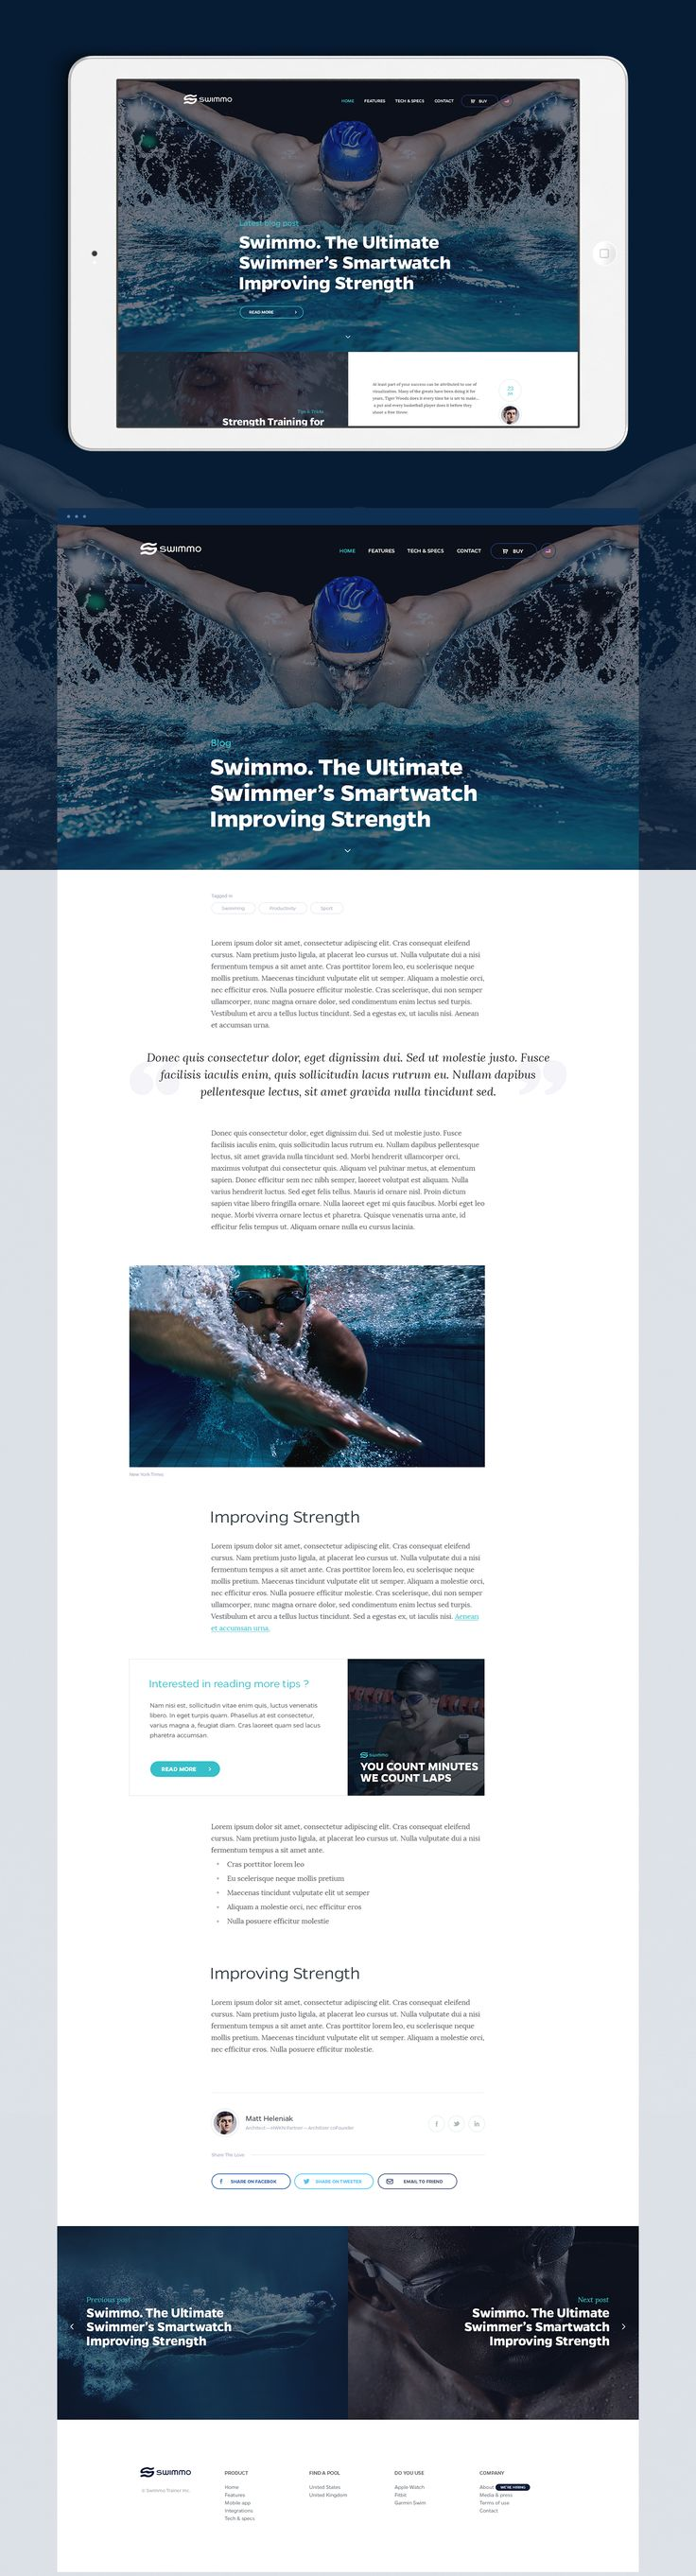 Swimmo Smart Watch - App and Website on Behance